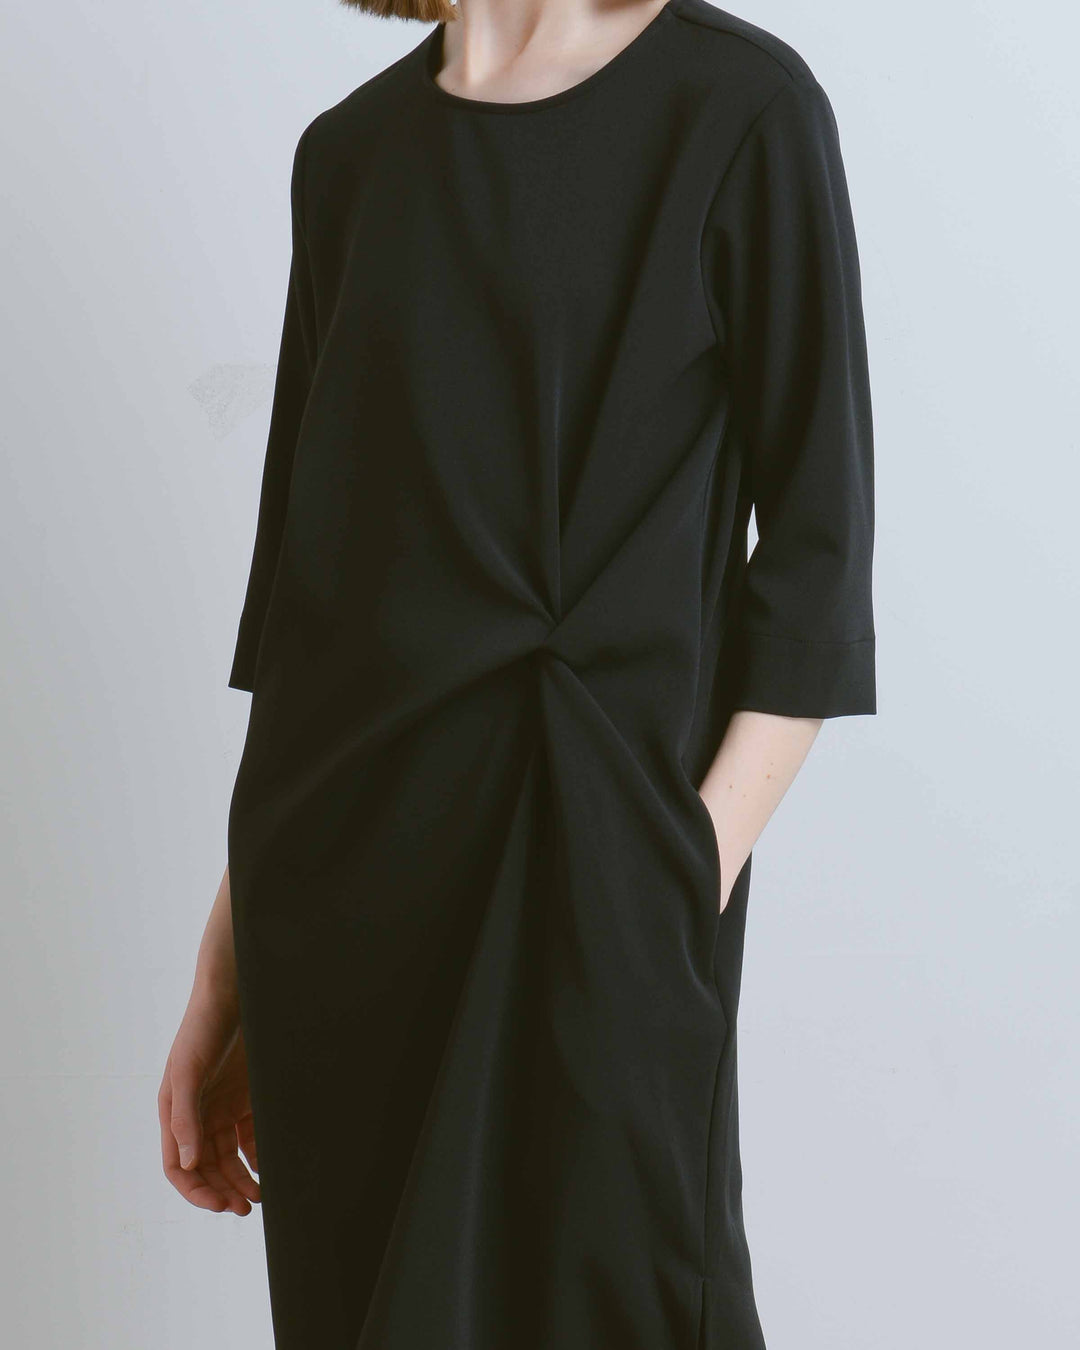 Black Knot Drape Dress